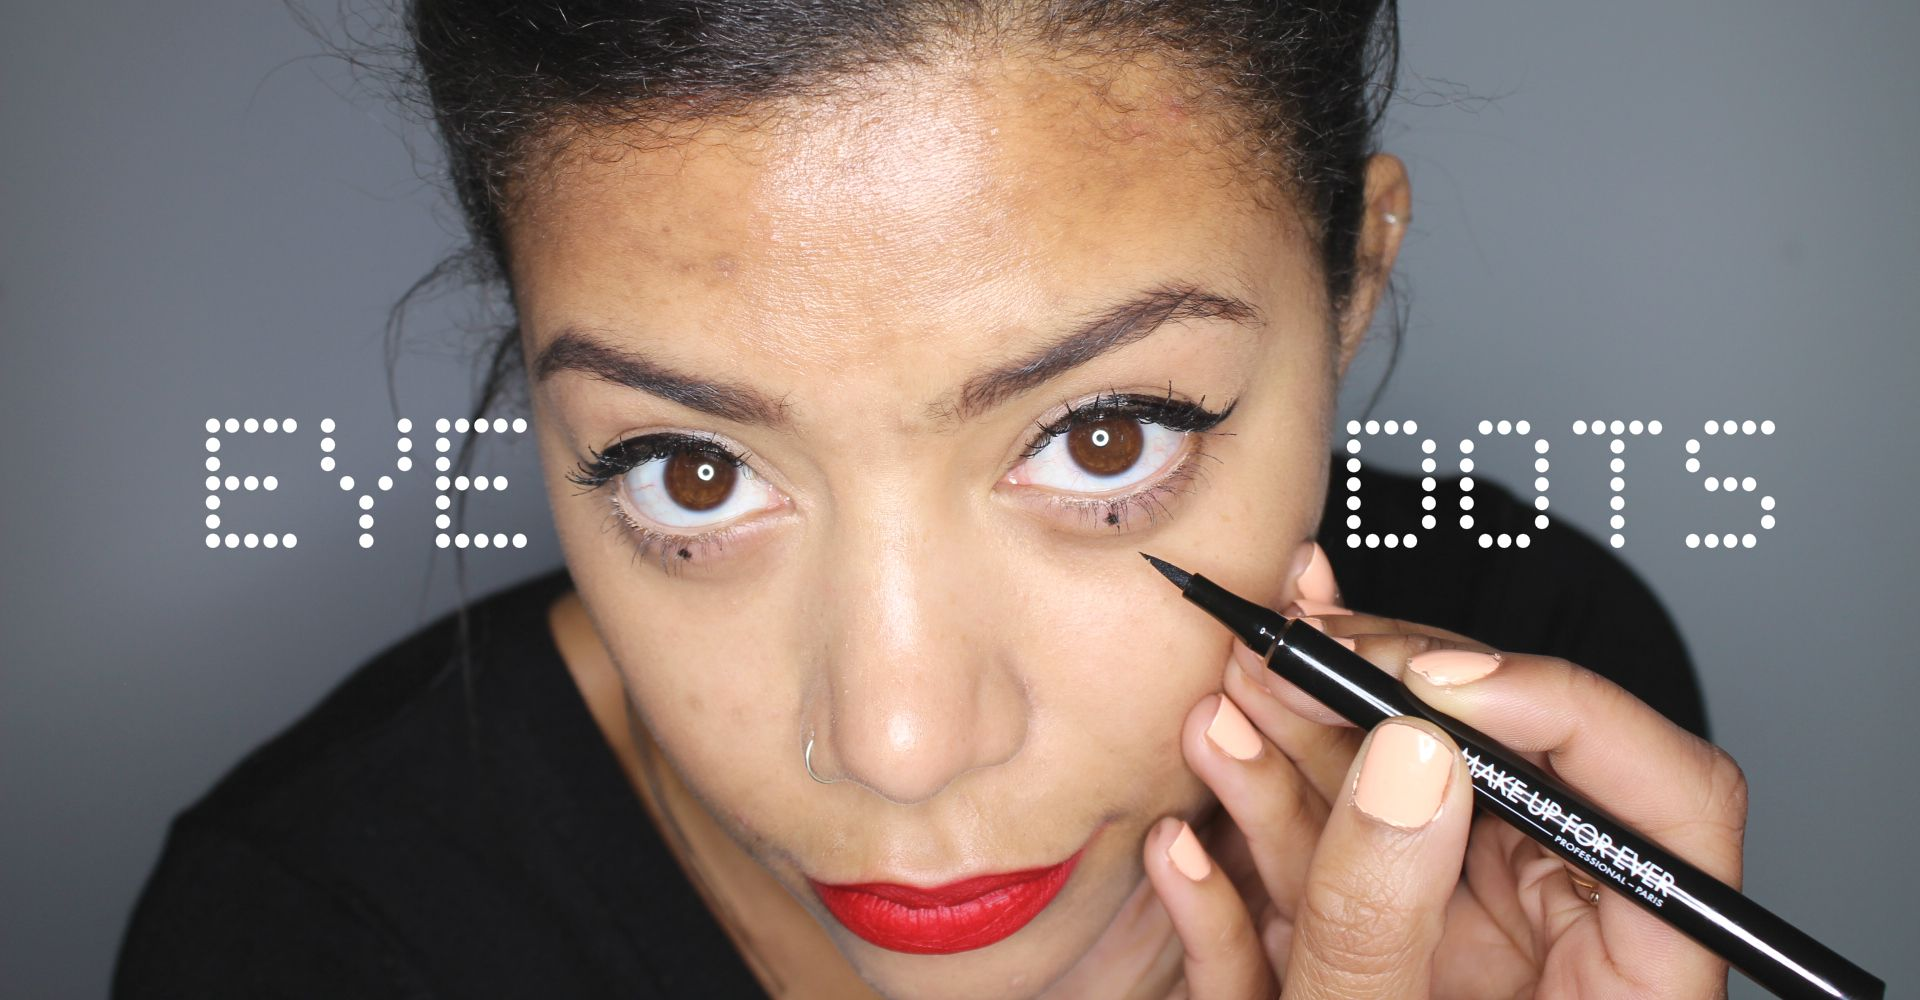 Makeup trend: How to do eye dots